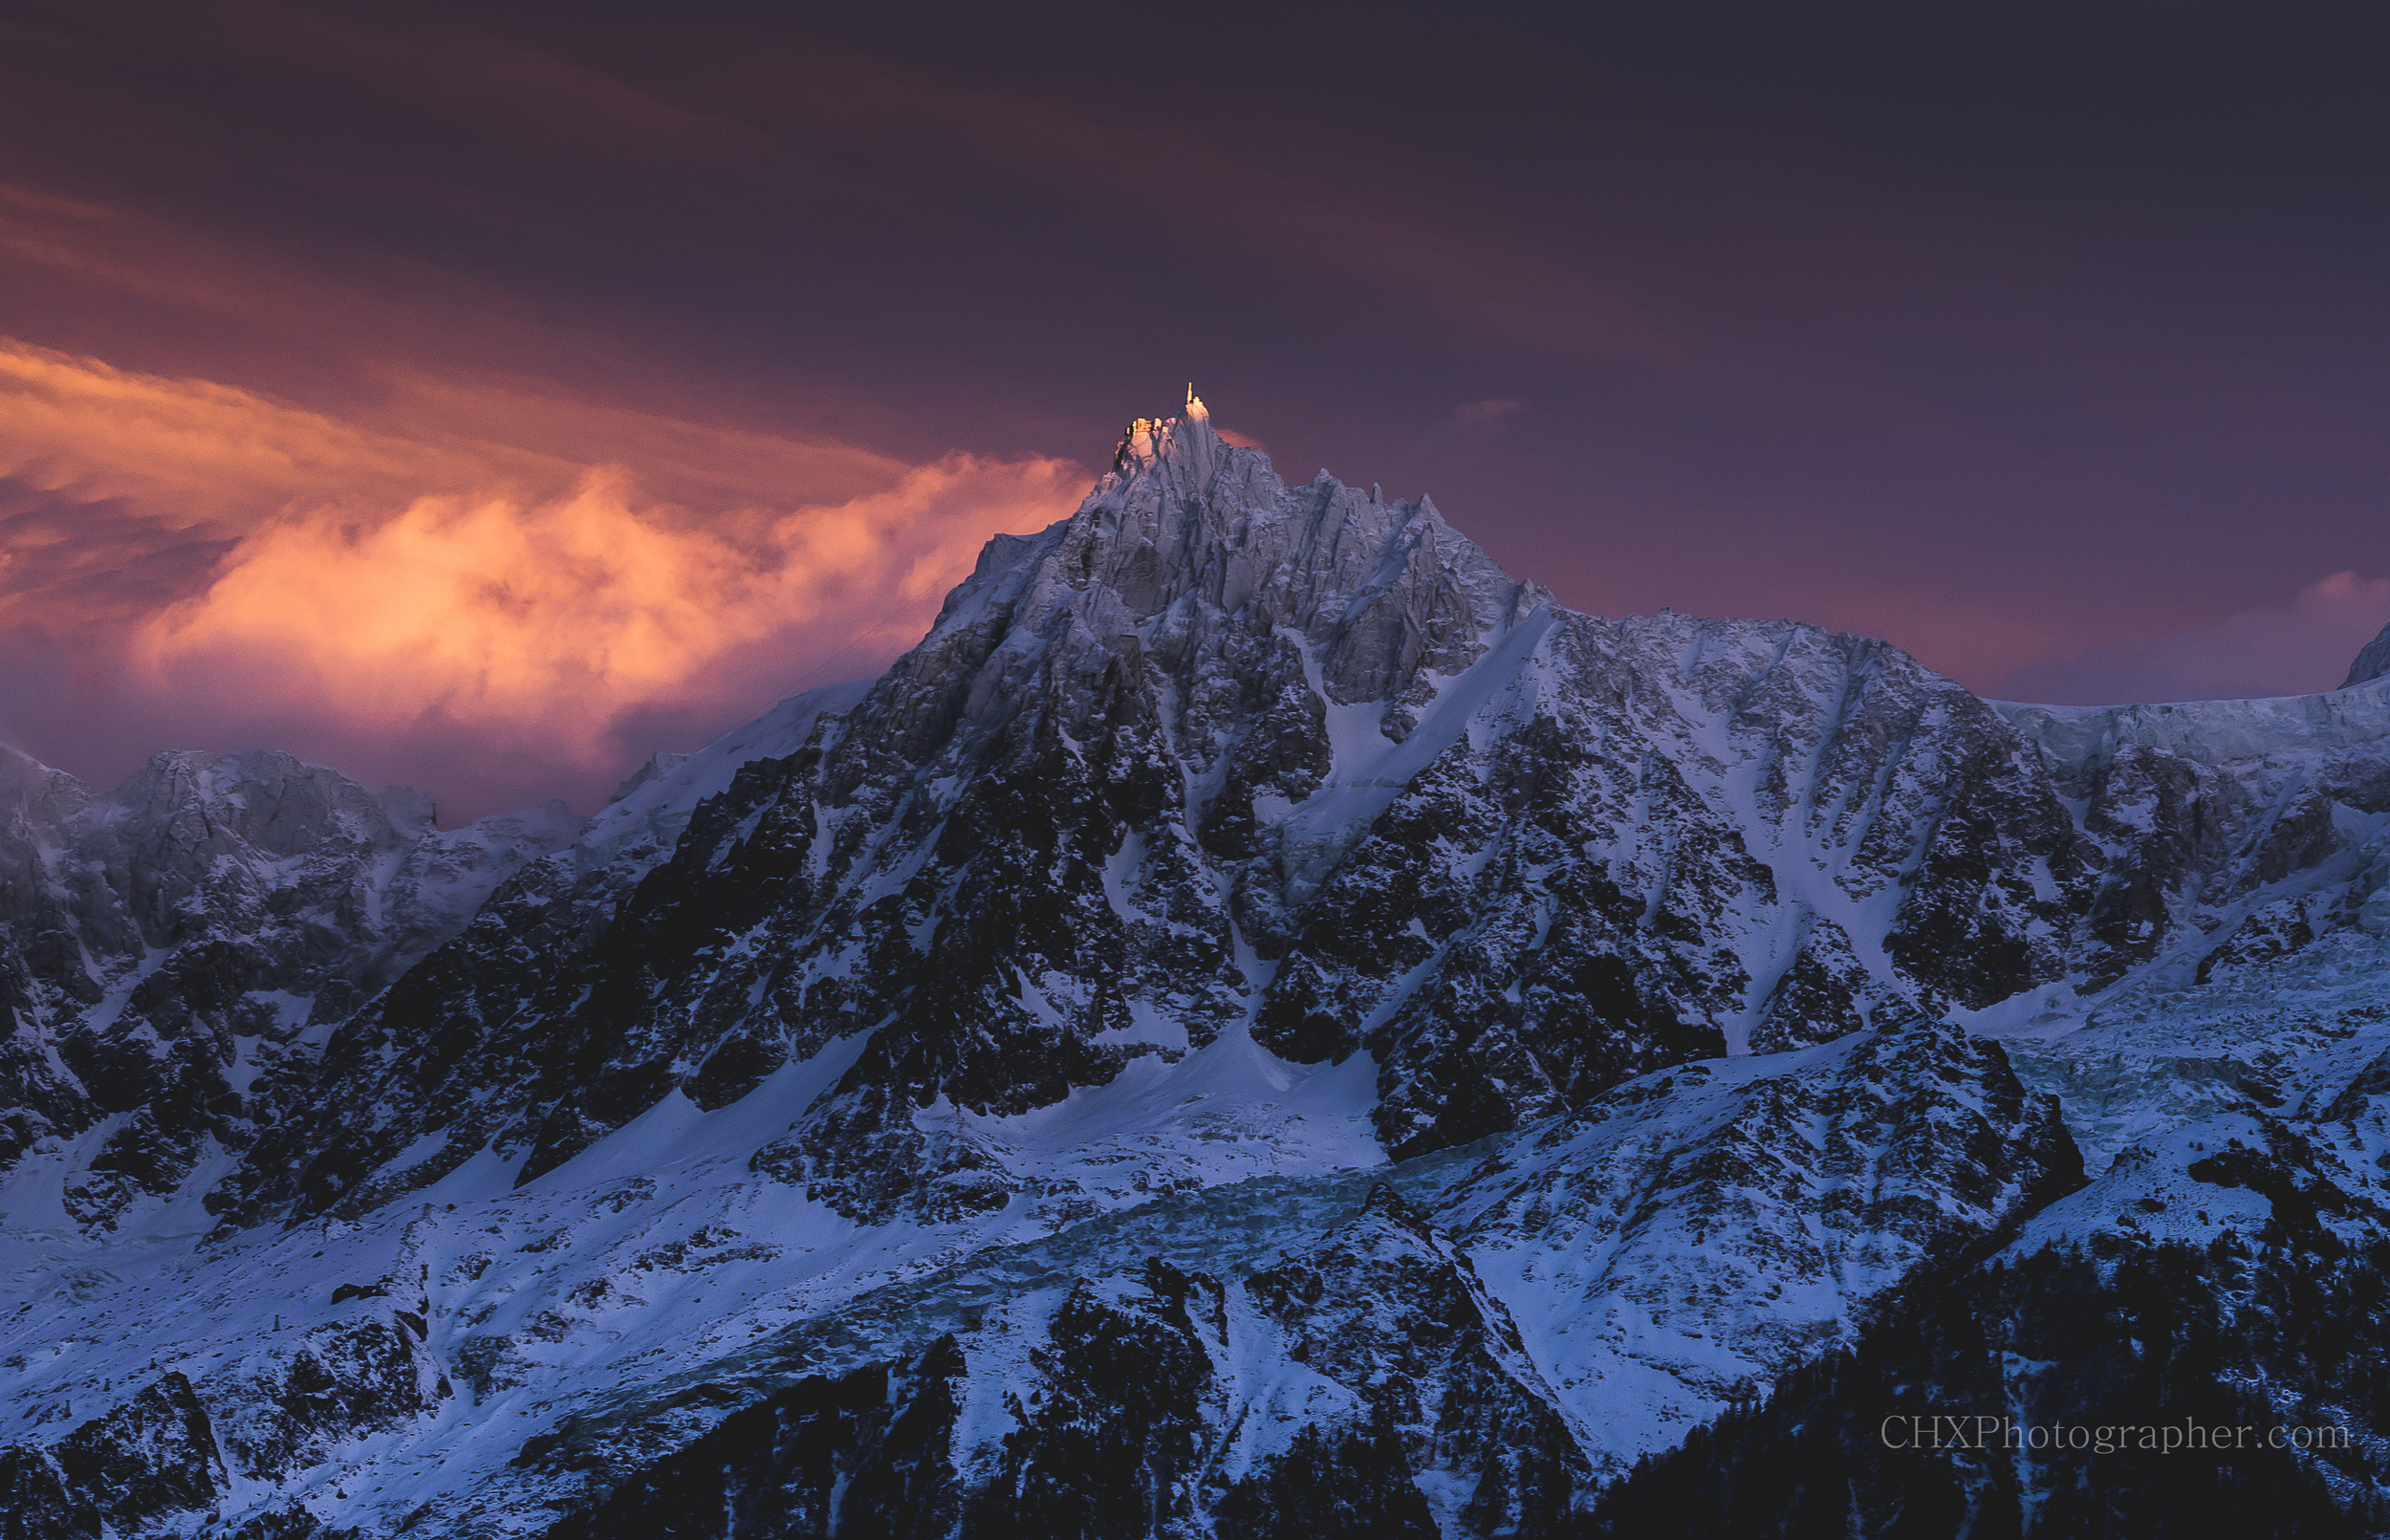 A fiery sunset over the Aiguille du midi in Chamonix, France